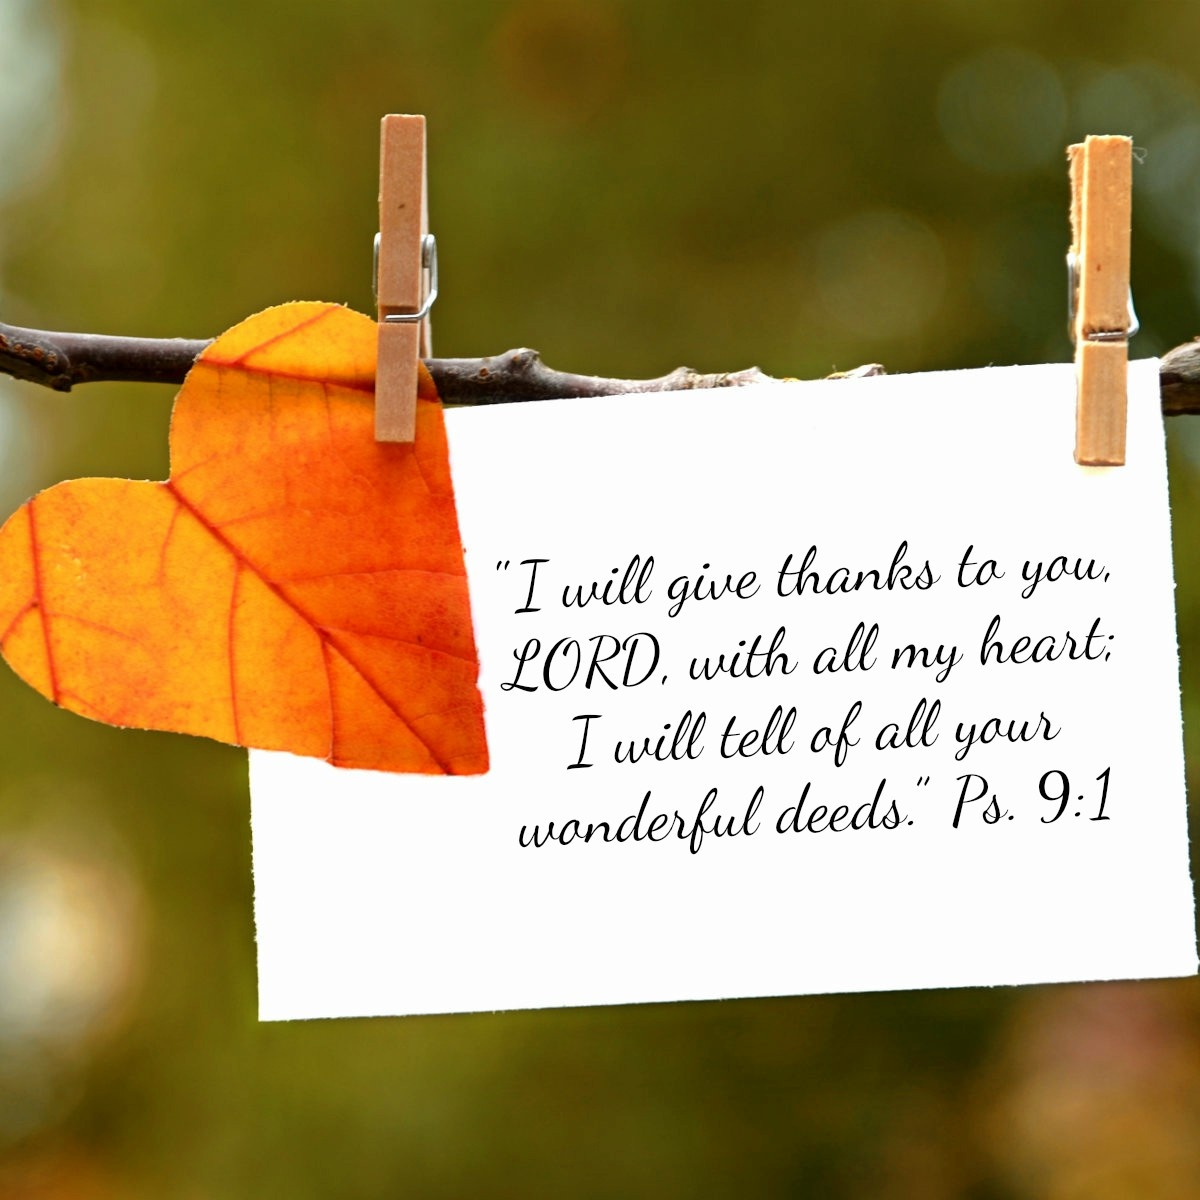 Bible Quotes Ungratefulness: The Power Of A Grateful Heart: 21 Verses Of Thanks To God